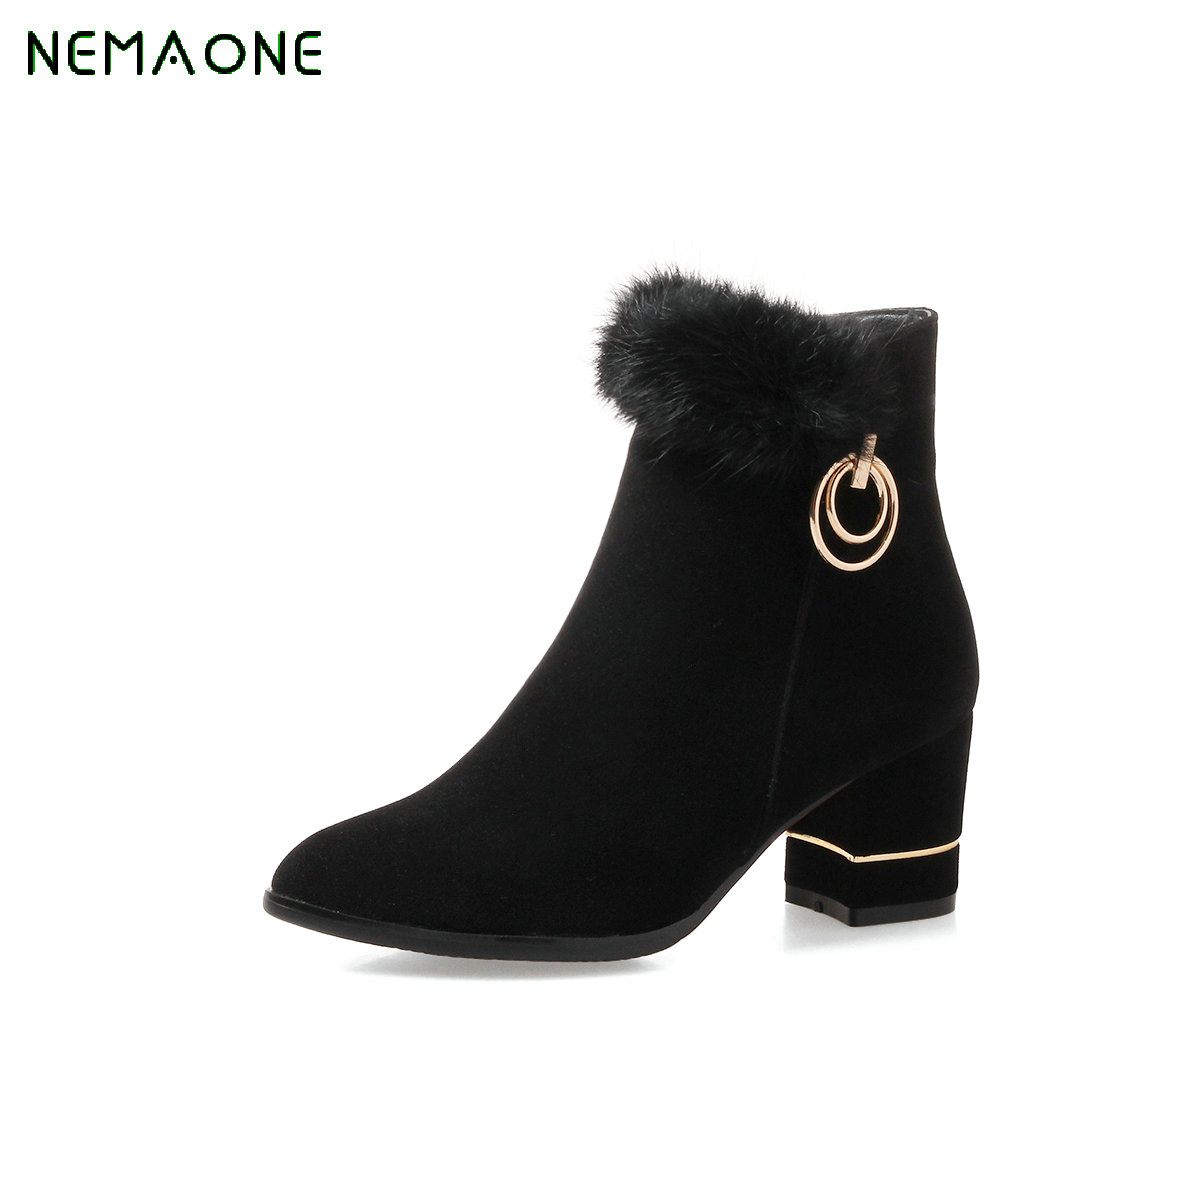 NEMAONE 2018 Woman Boots Ankle Boots Zipper Square High Heel Women Shoes PU leather Fashion Ladies Motorcycle Boots Size 34-43 2017 pink shoes woman pu leather square high heel ankle boots zipper women winter shoes ladies motorcycle boots size 33 43